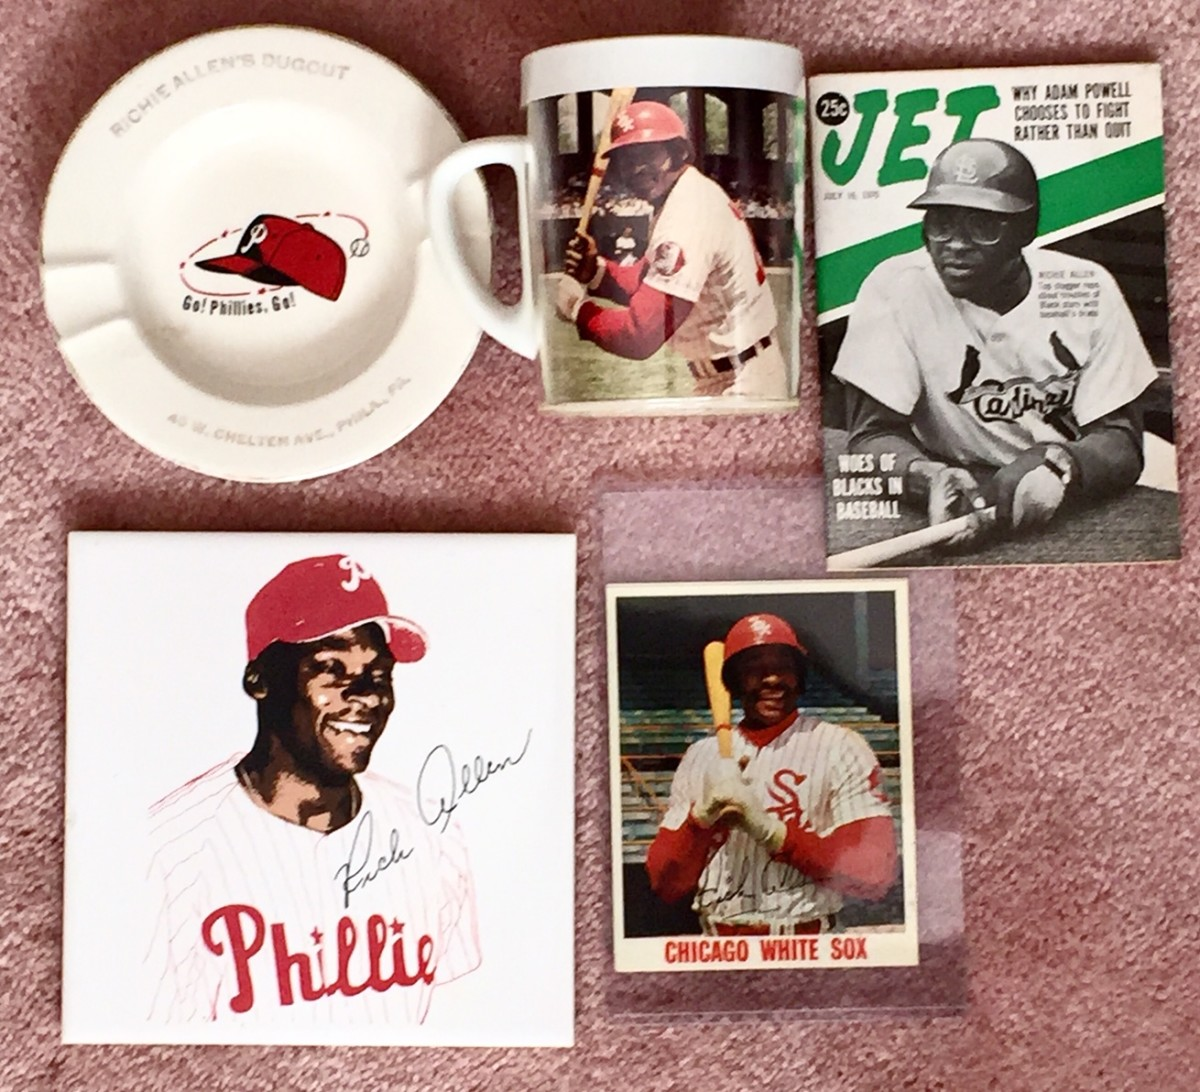 Allen-themed mugs, magazine cover and baseball cards